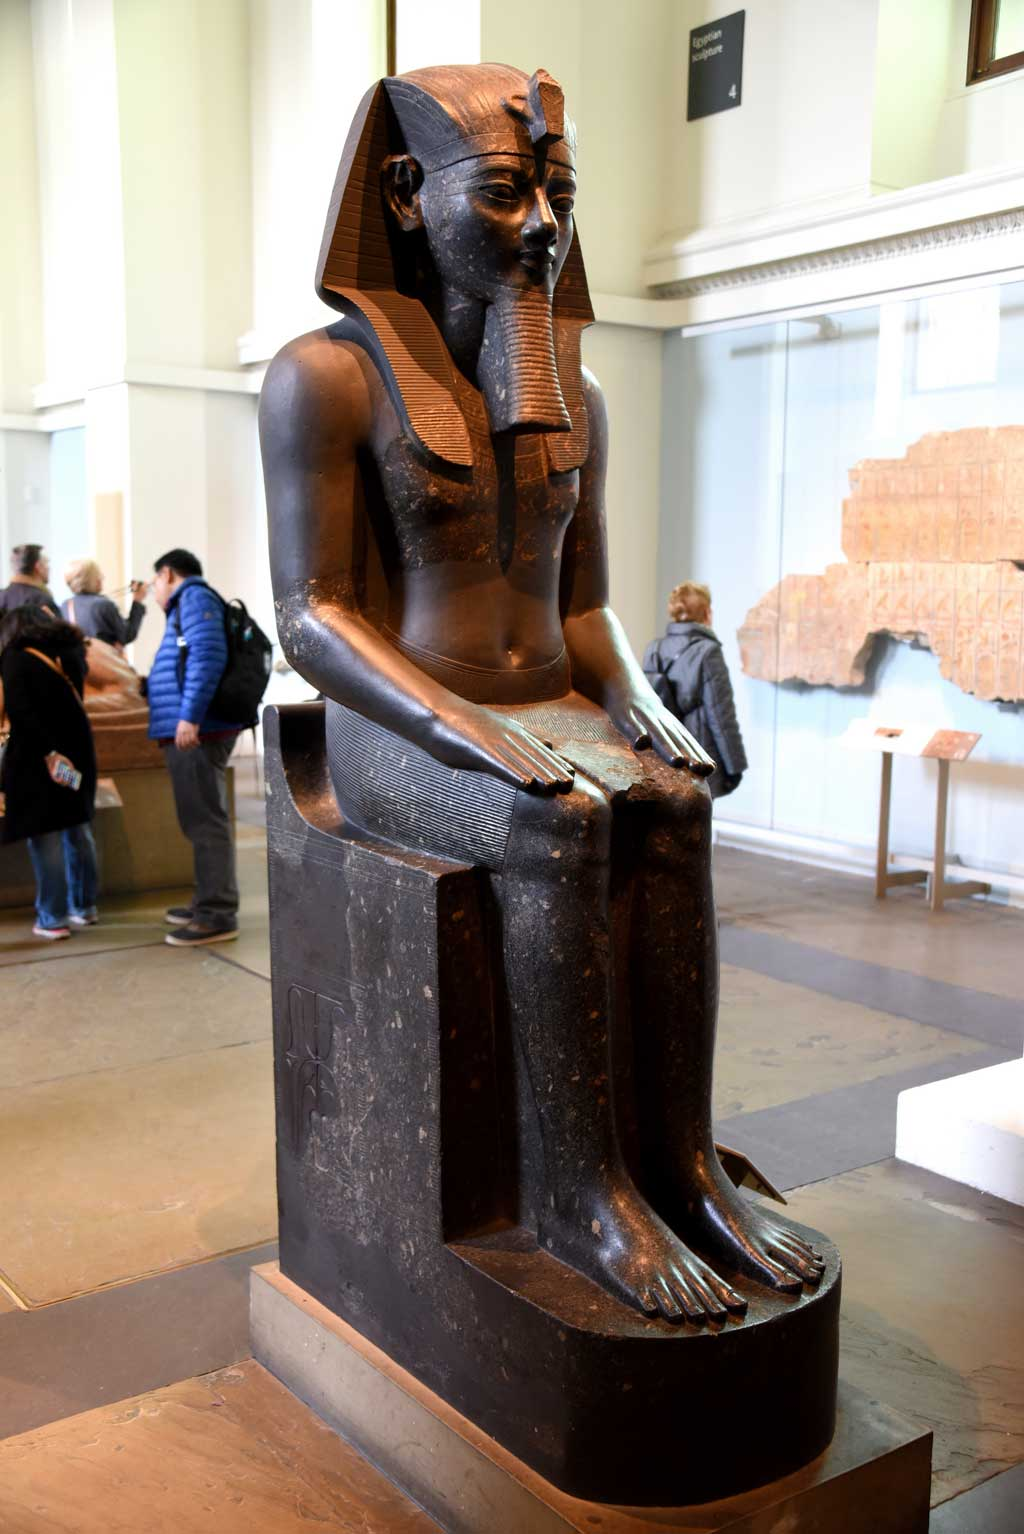 The picture is of a seated Amenhotep III, carved out of black stone. Here, the king sits while looking straight ahead, with hands placed flatly on his bent knees.